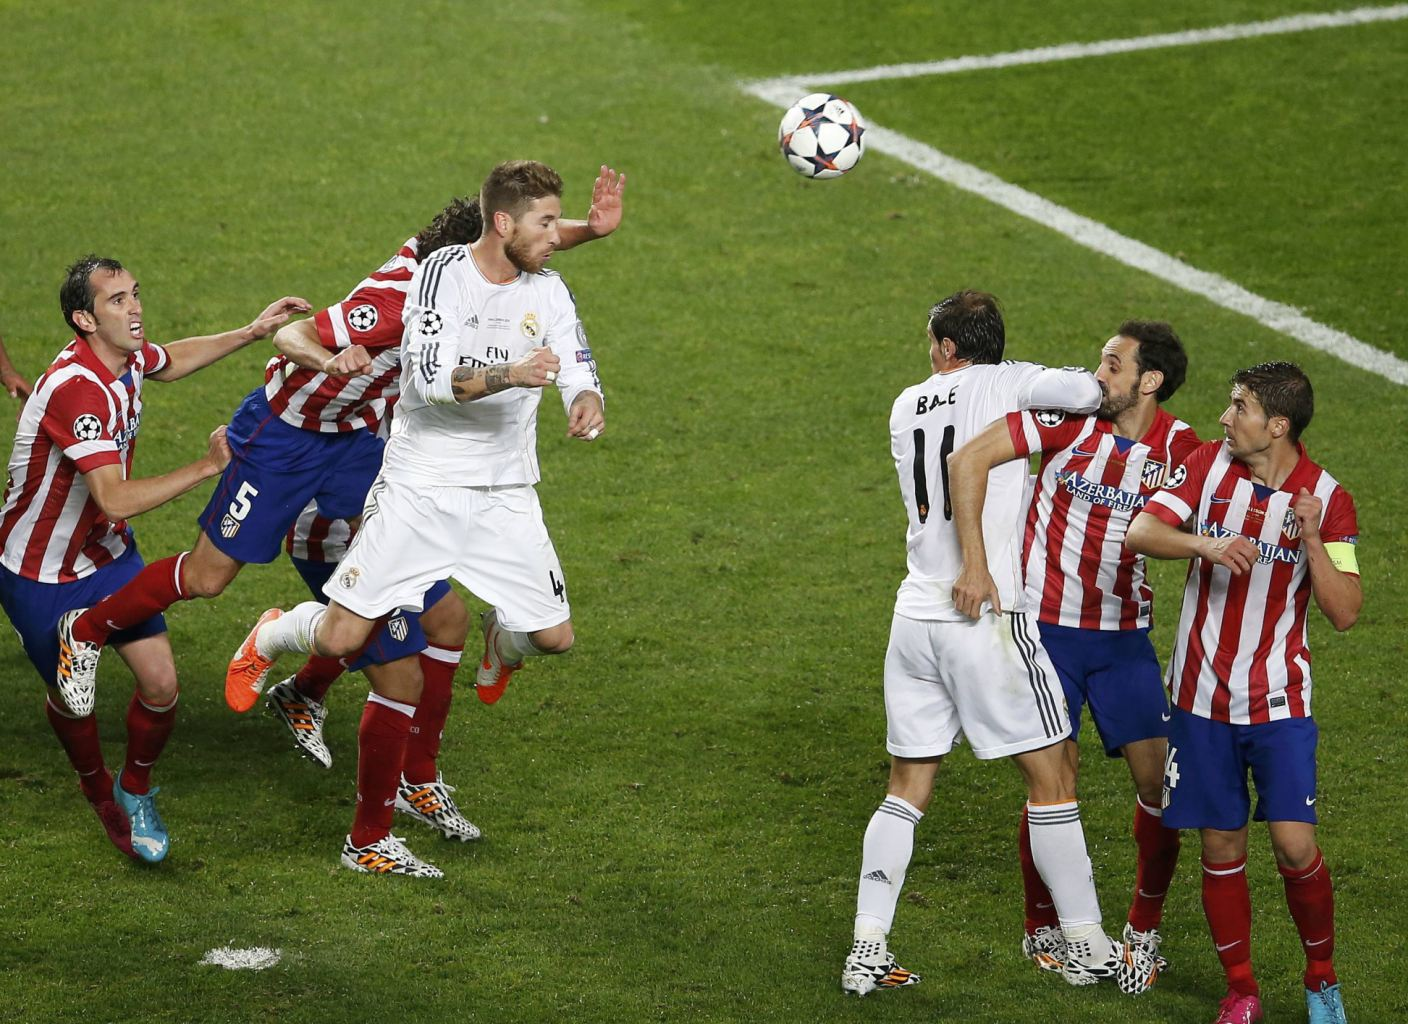 League final between real madrid and atletico football heads